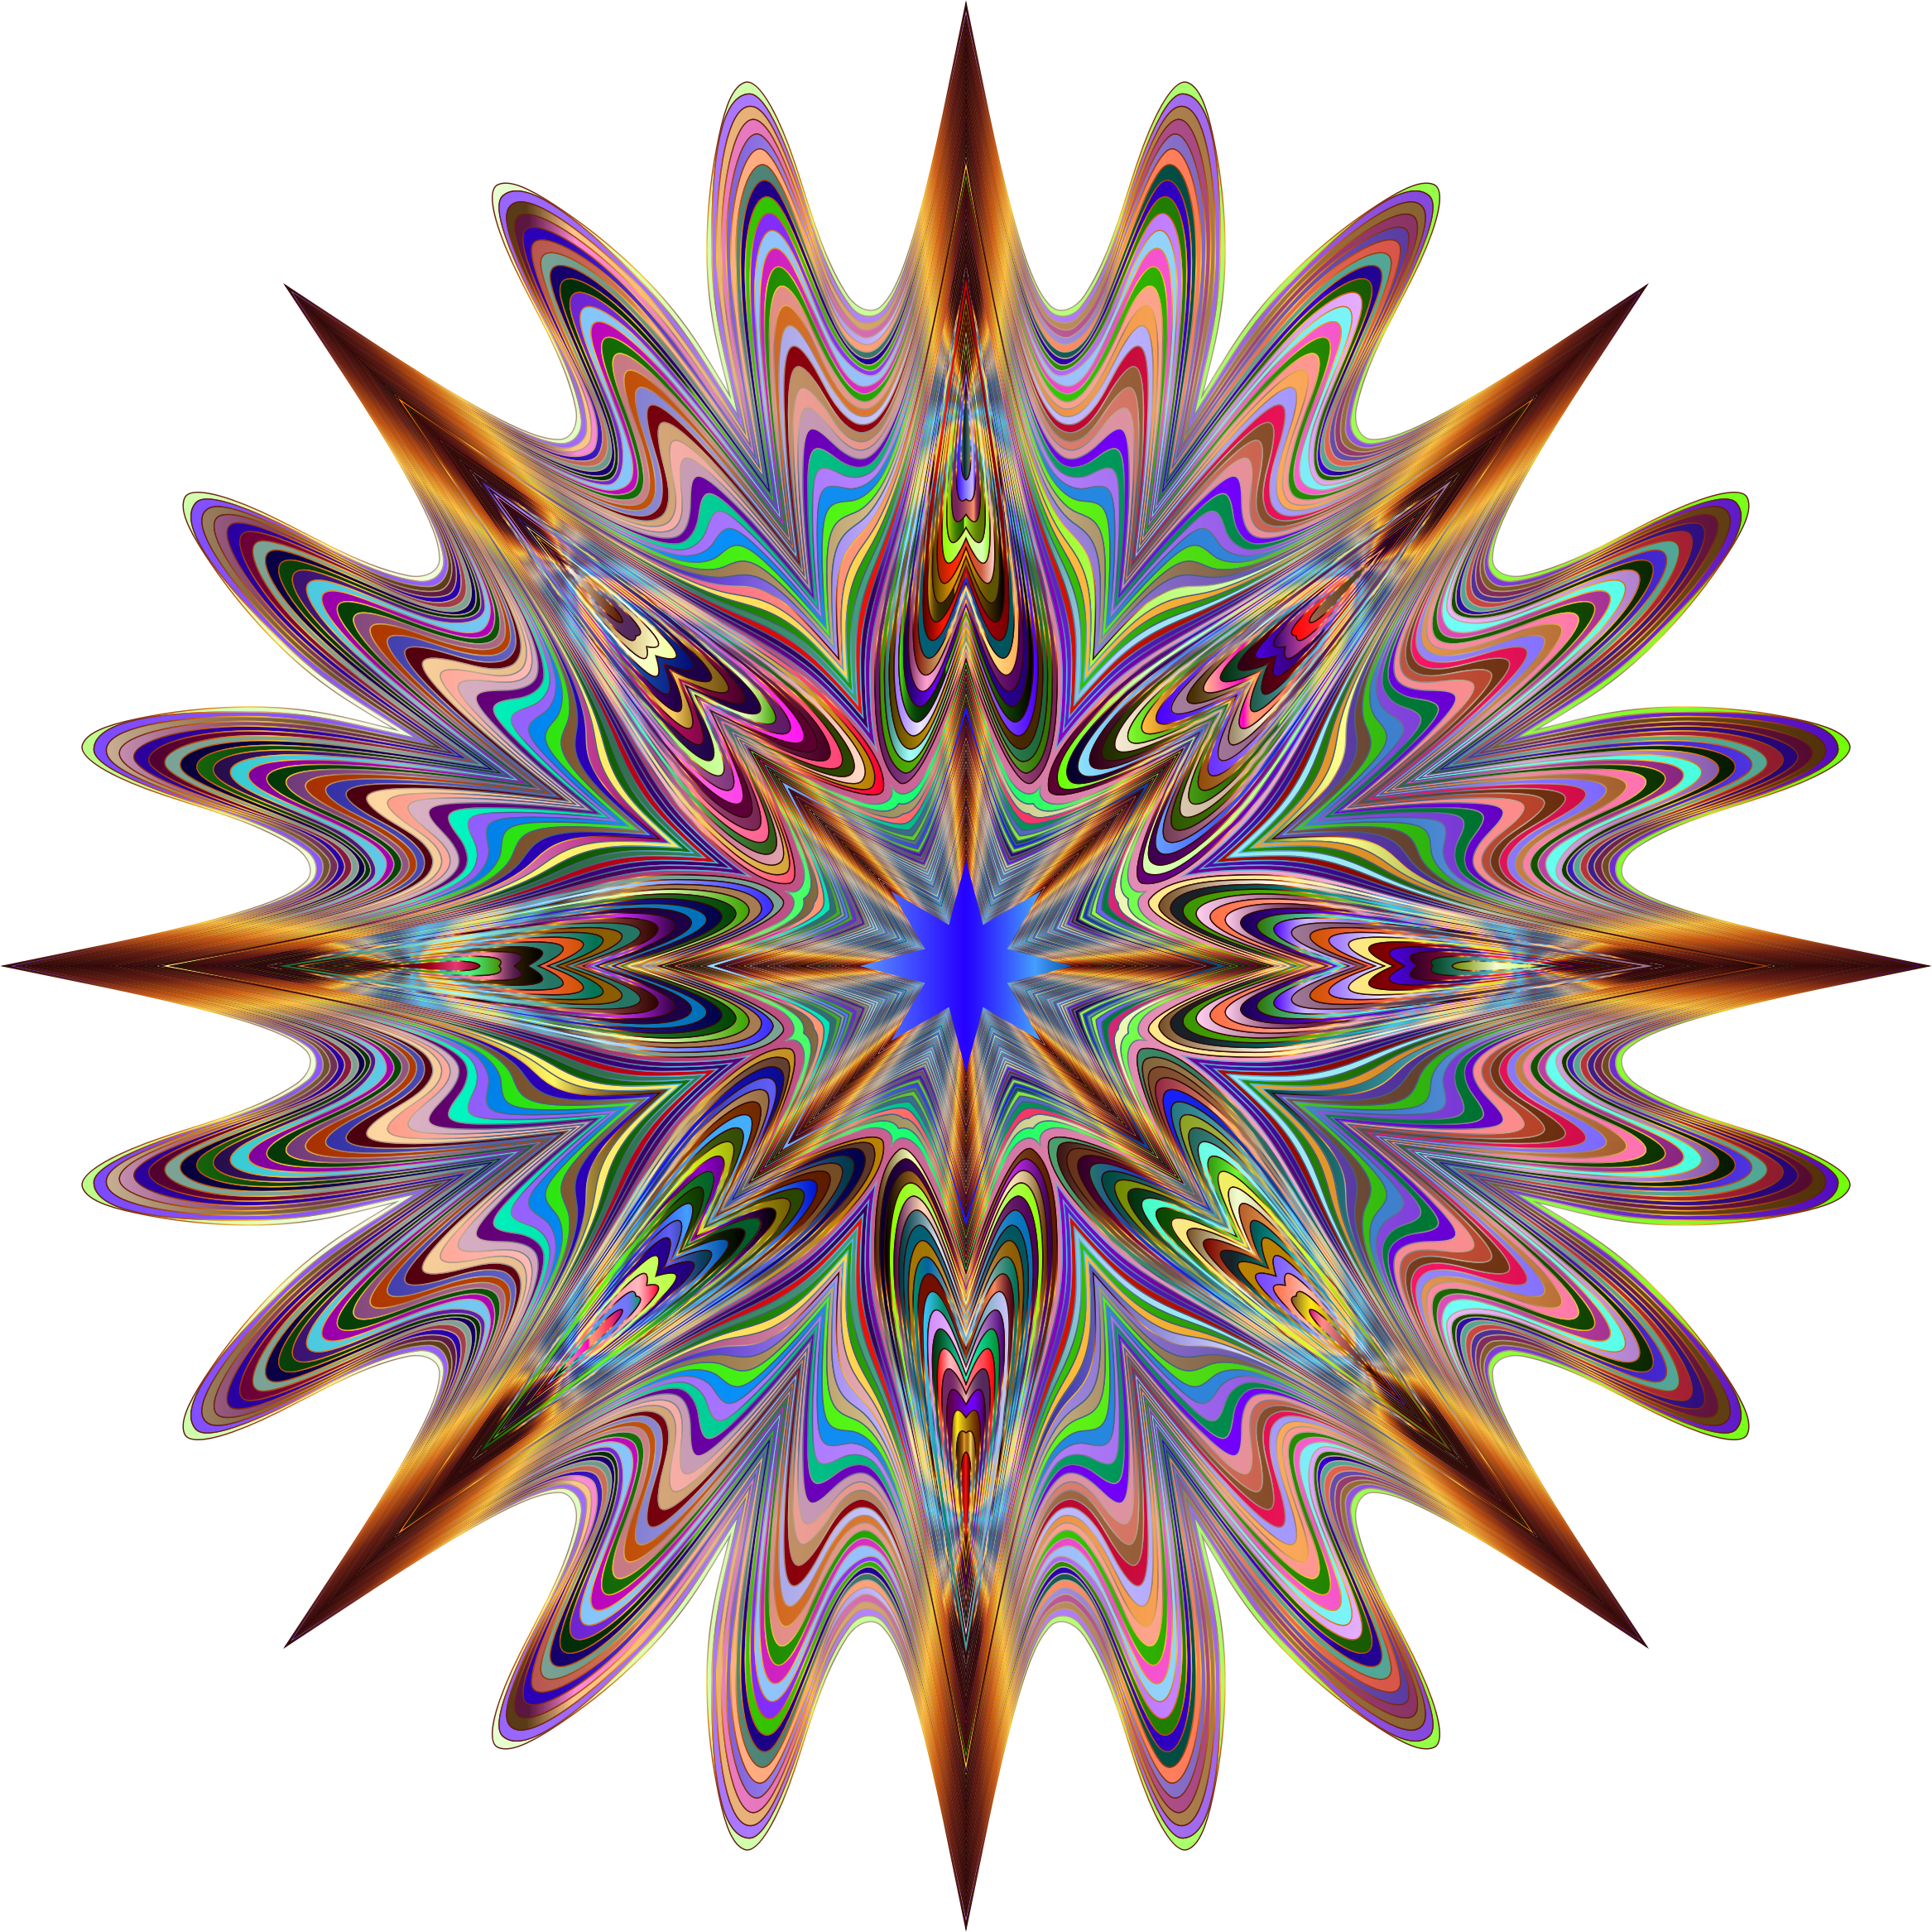 Psychedelic Chromatic Star 2 No Background by GDJ